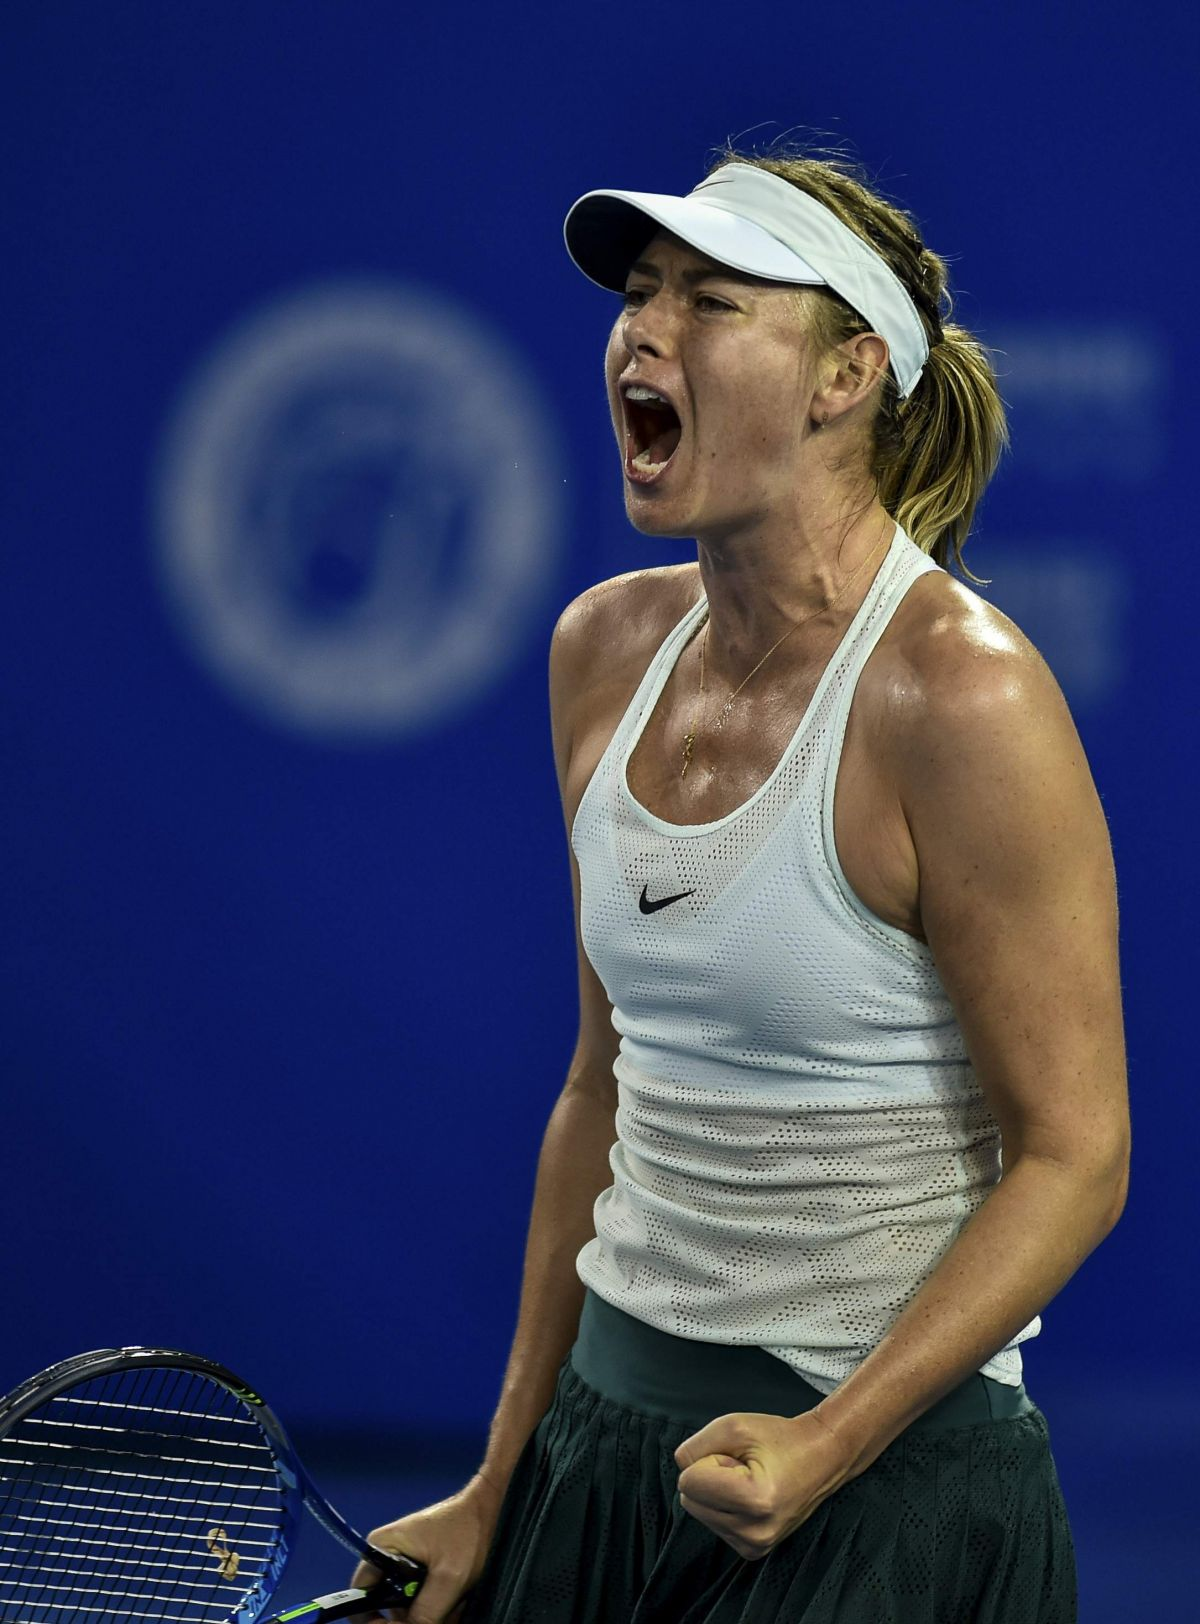 MARIA SHARAPOVA at 2018 Shenzen Open WTA International ...